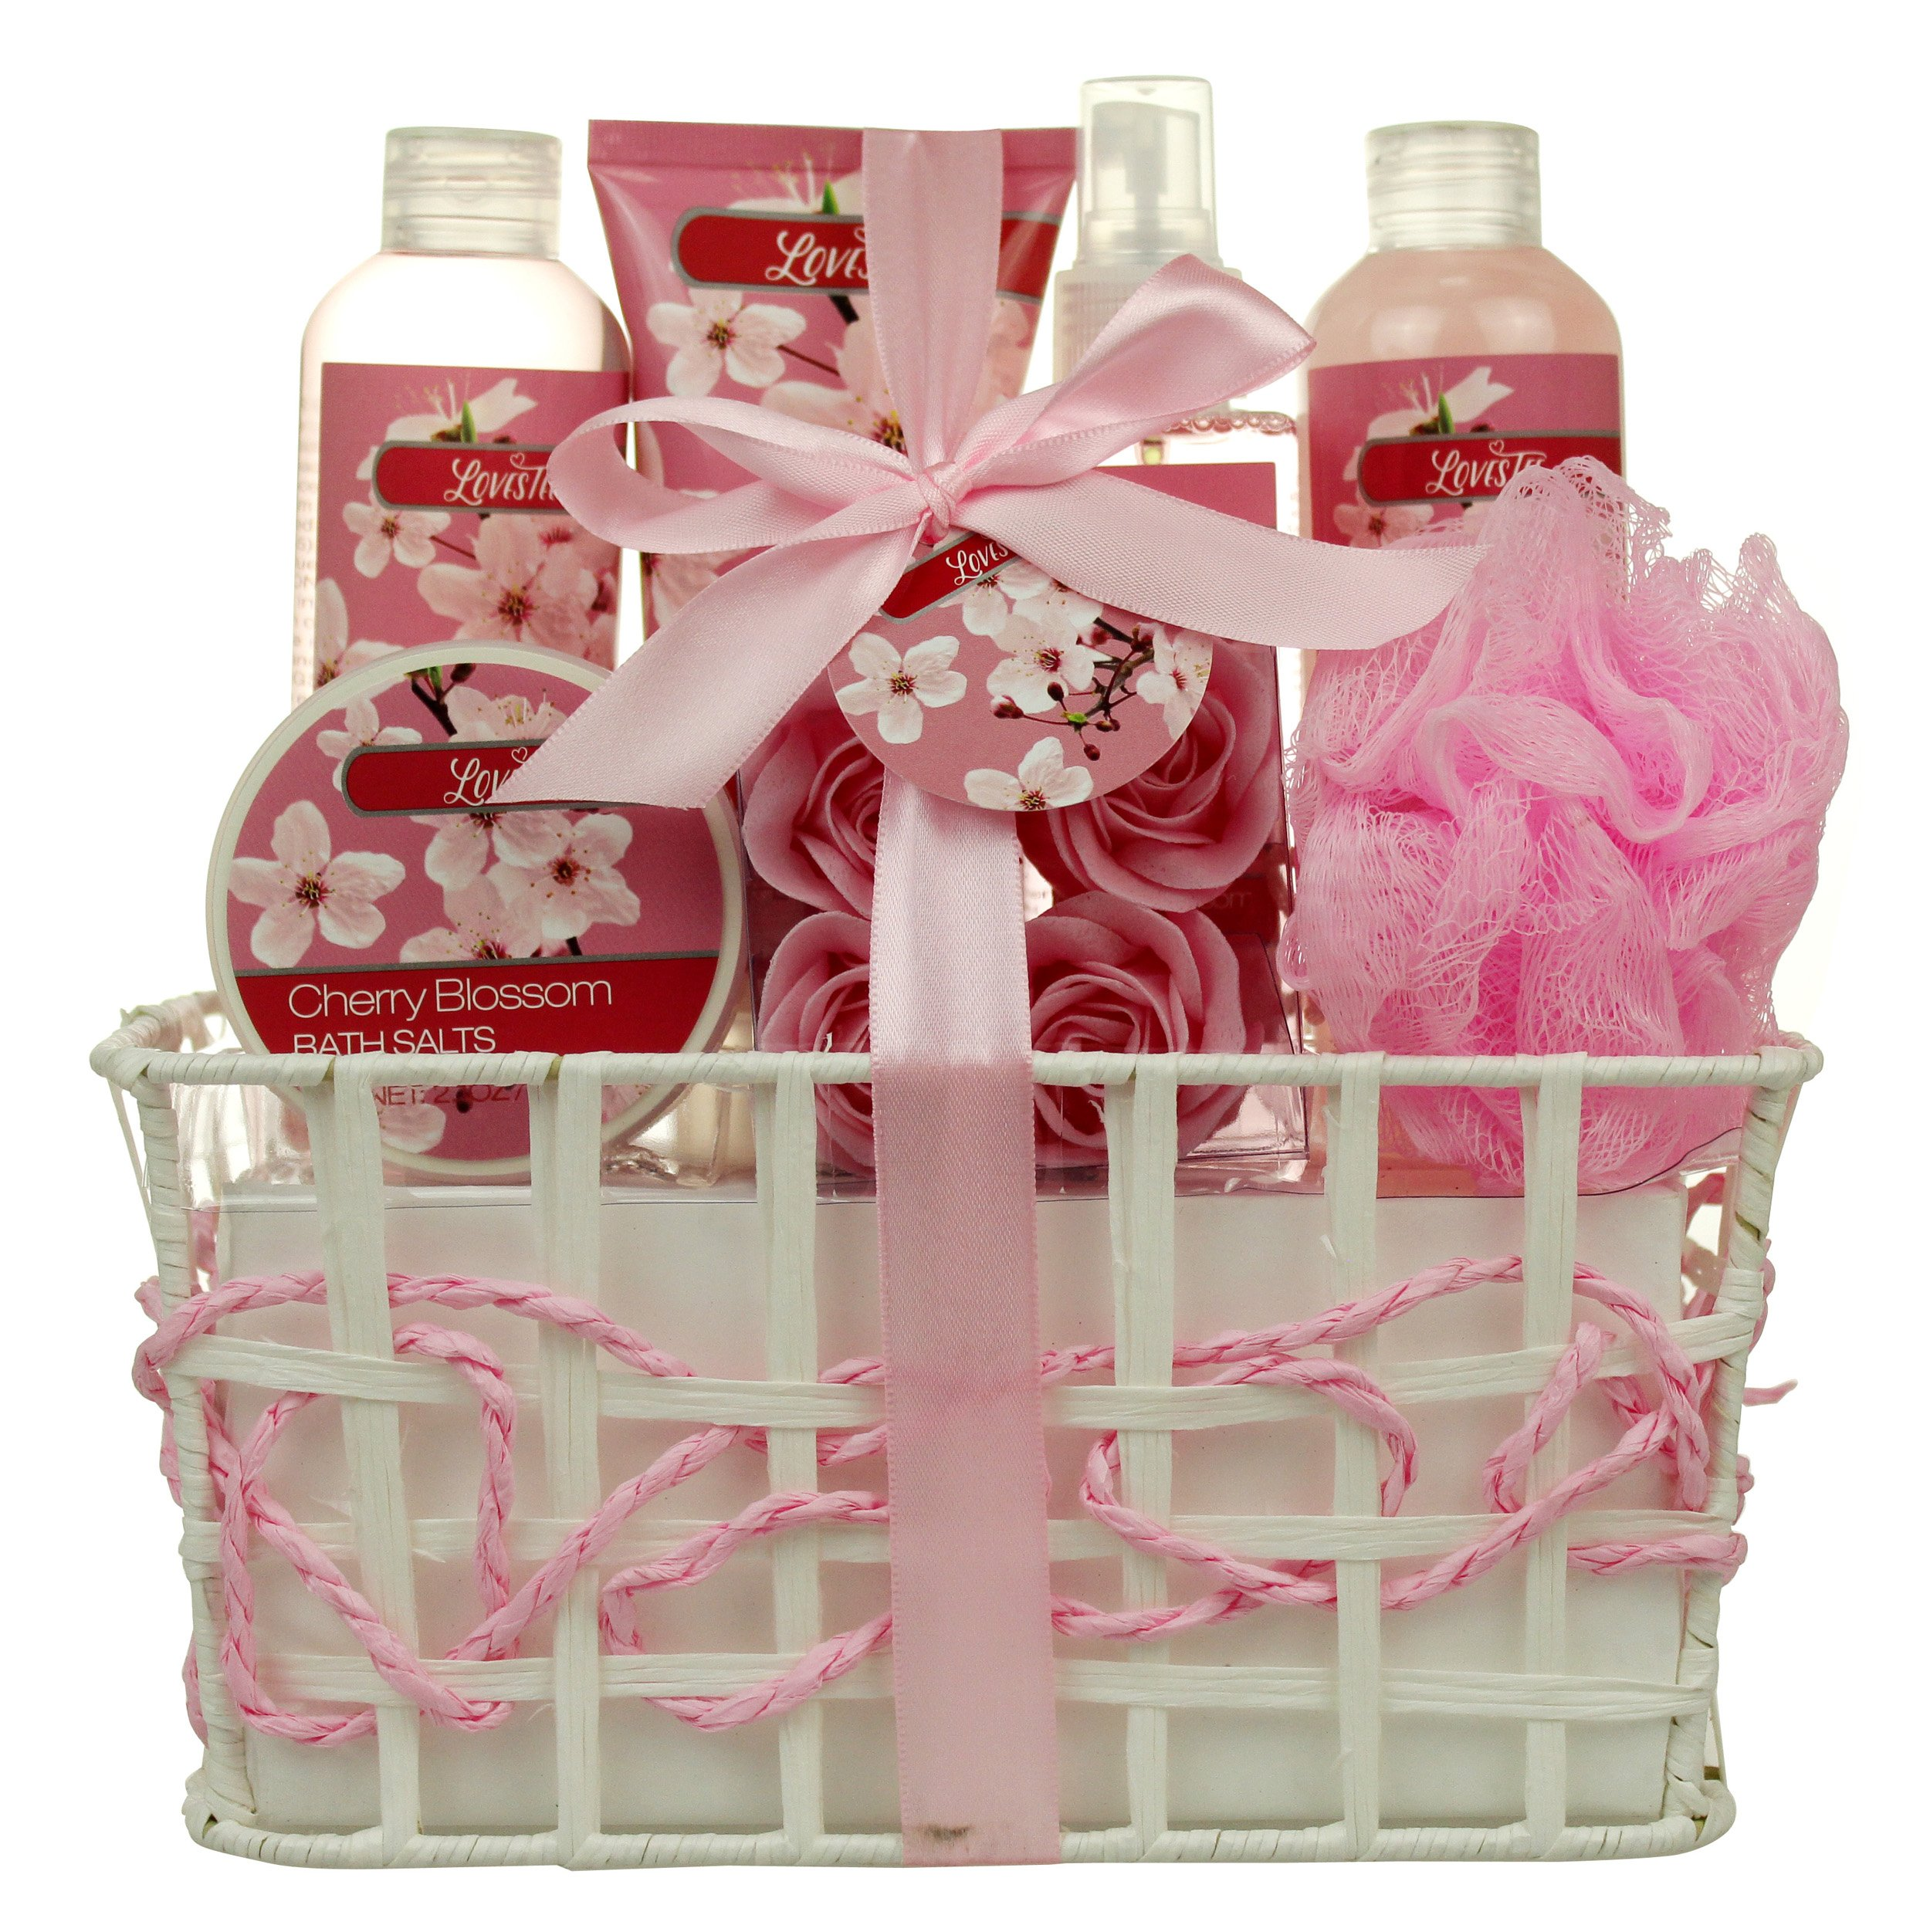 Relaxing Bath Spa Kit for Women and Teens, Gift Set Bath, Body Works- Cherry Aromatherapy Spa Gift Basket Includes Loofah Sponge, Bath Salt, Body Lotion, Roses, Body Mist, Shower Gel And Bubble Bath